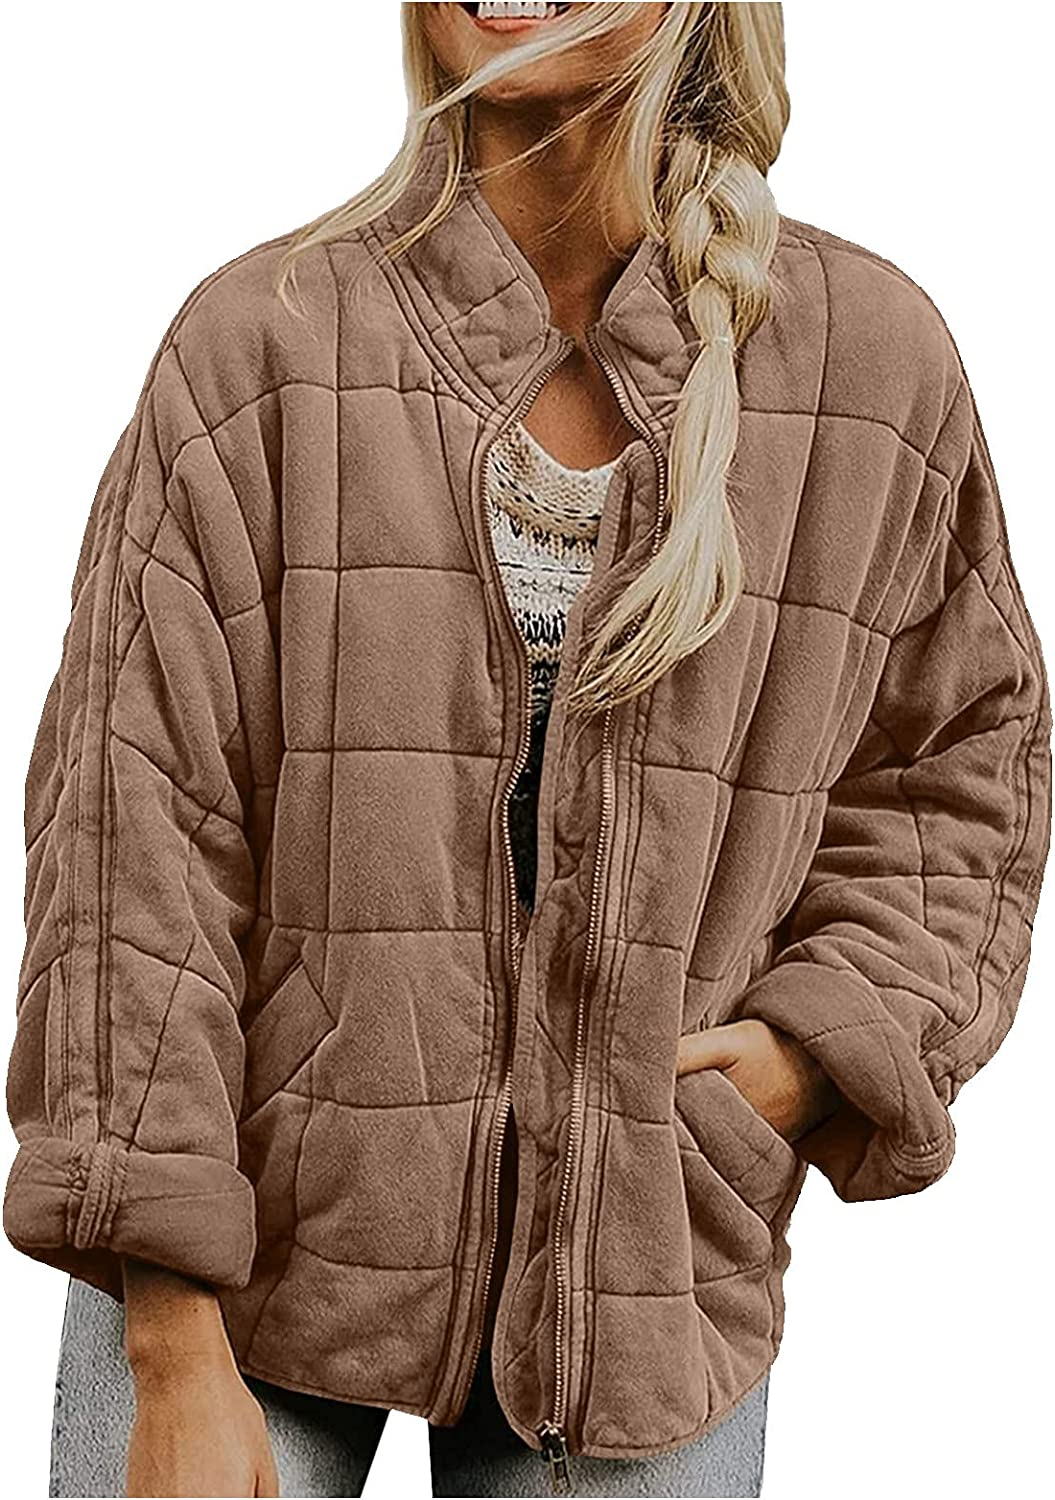 ODJOY-FAN Womens Dolman Lightweight Quilted Jackets Zip Up Long Sleeve Stand Neck Warm Winter Outwears Solid Color Coat